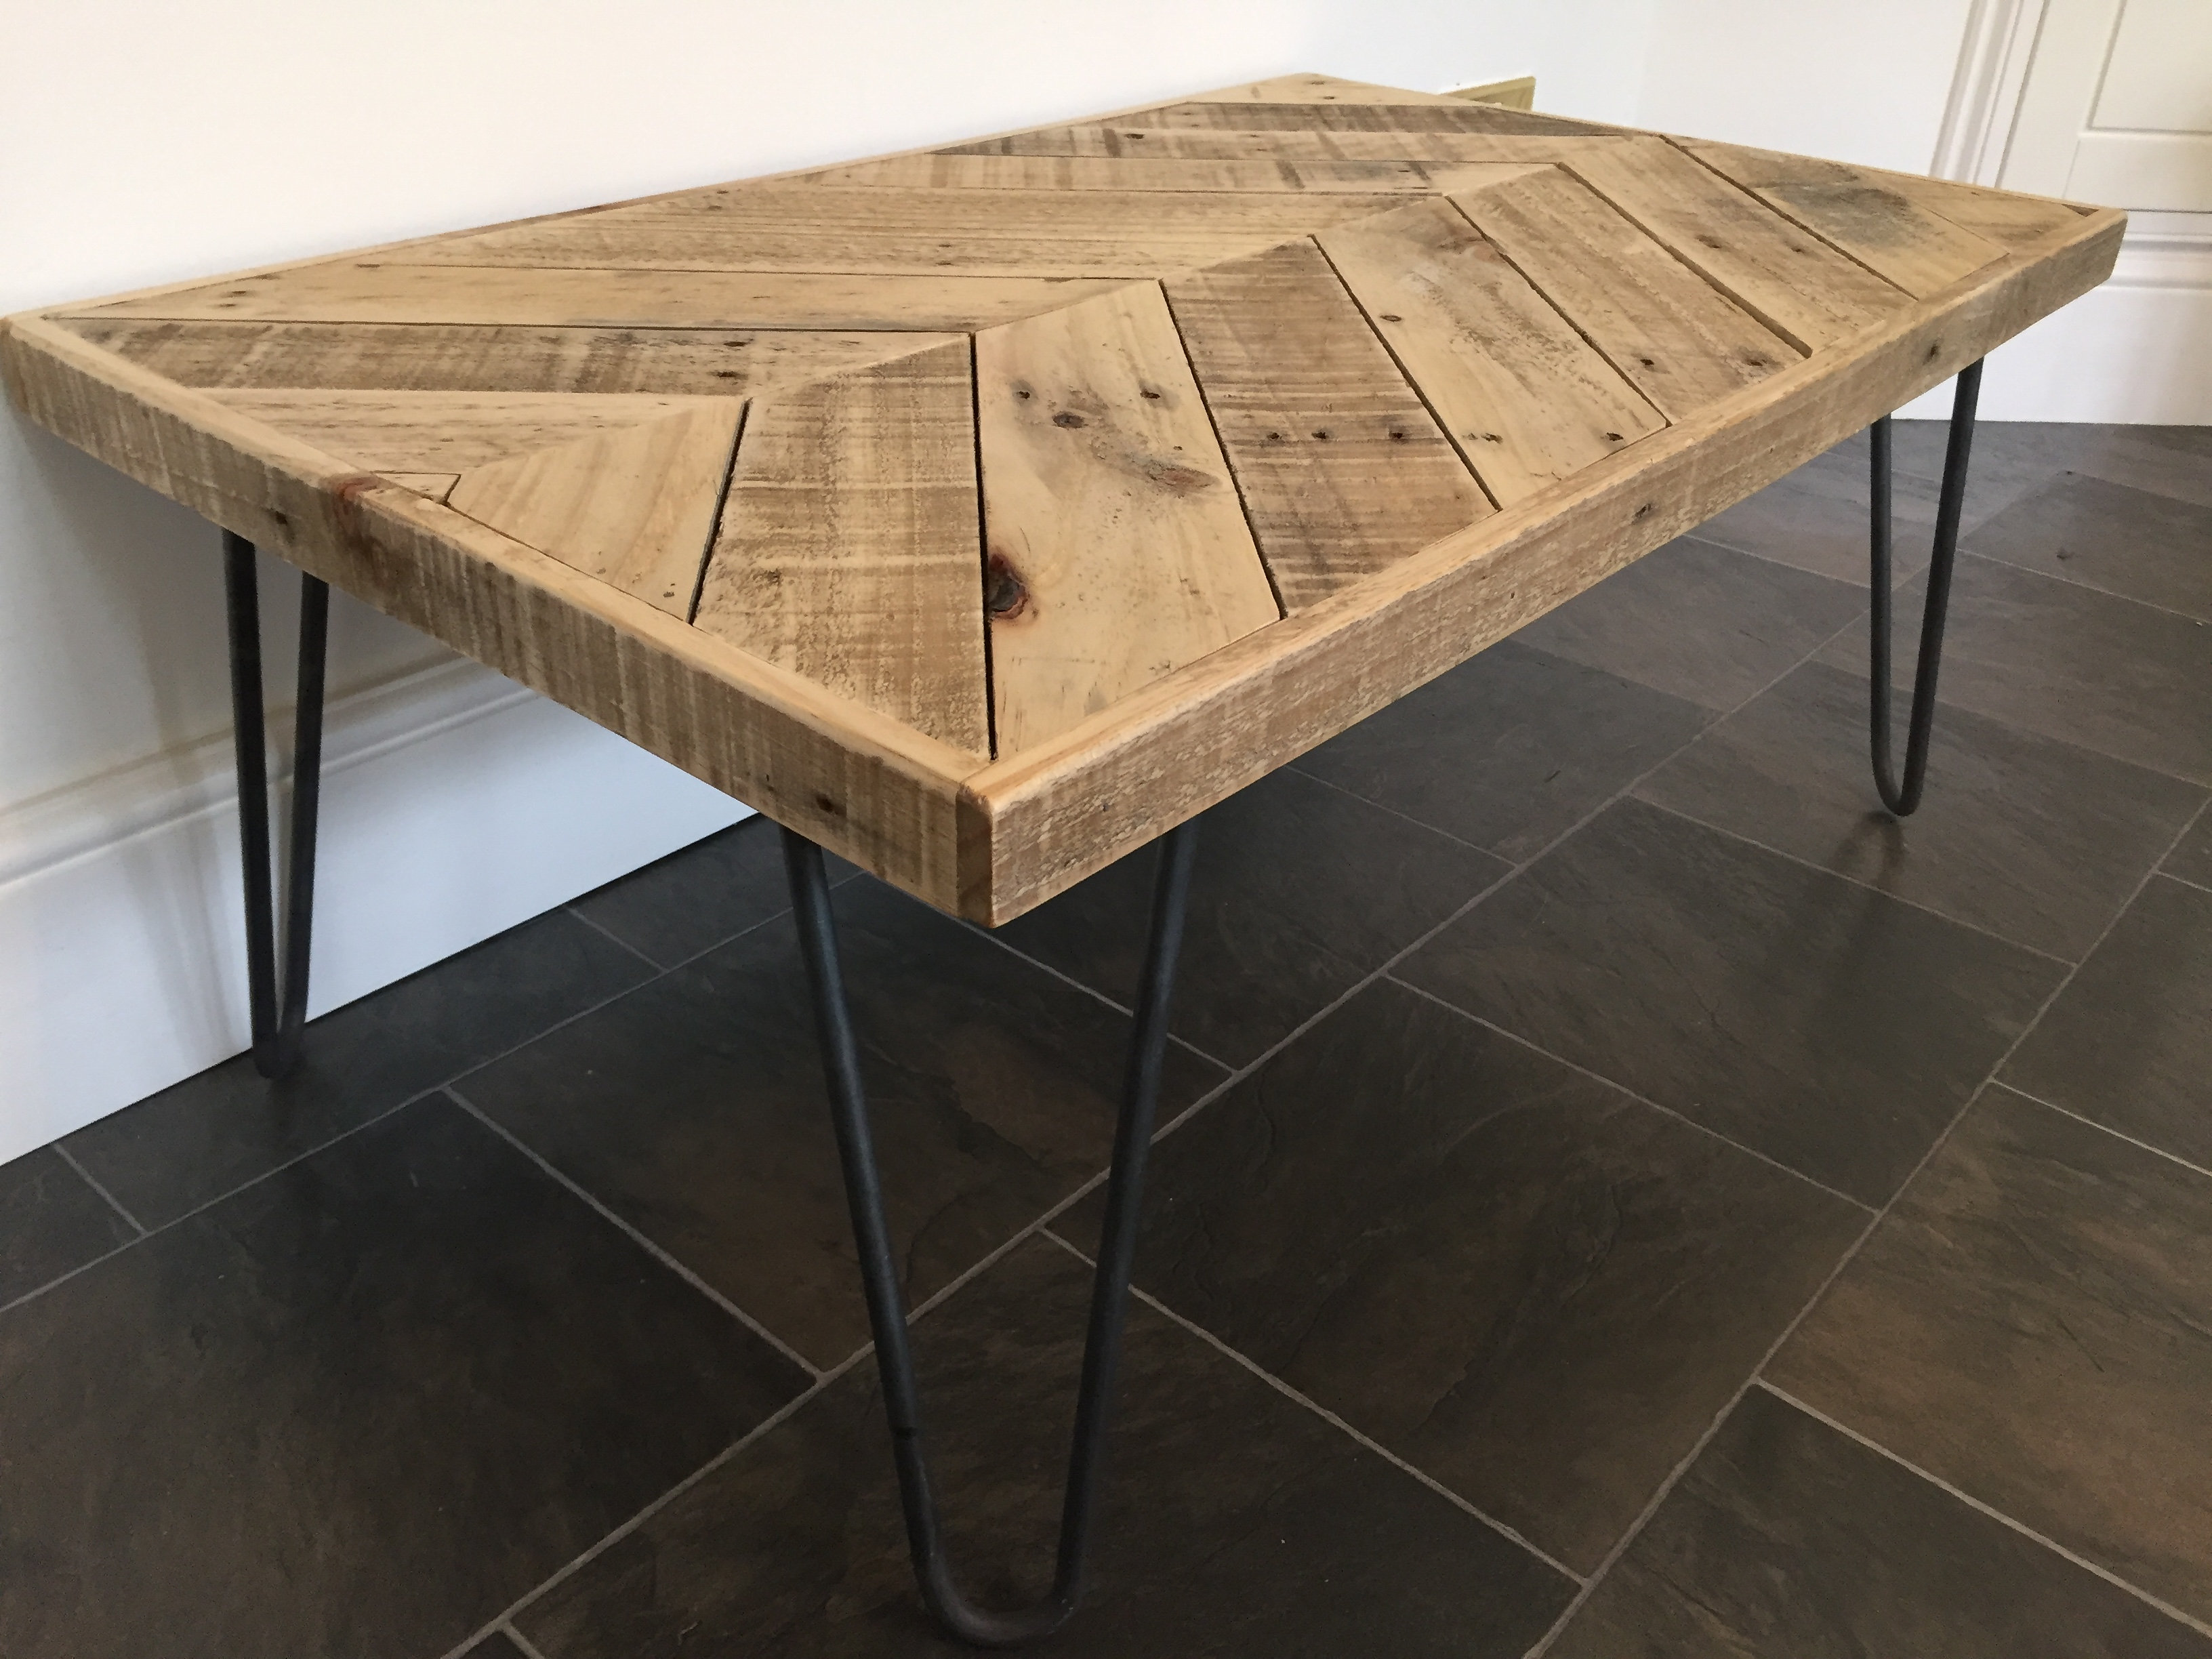 Reclaimed Wood Furniture Scaffold Furniture and Home Decor